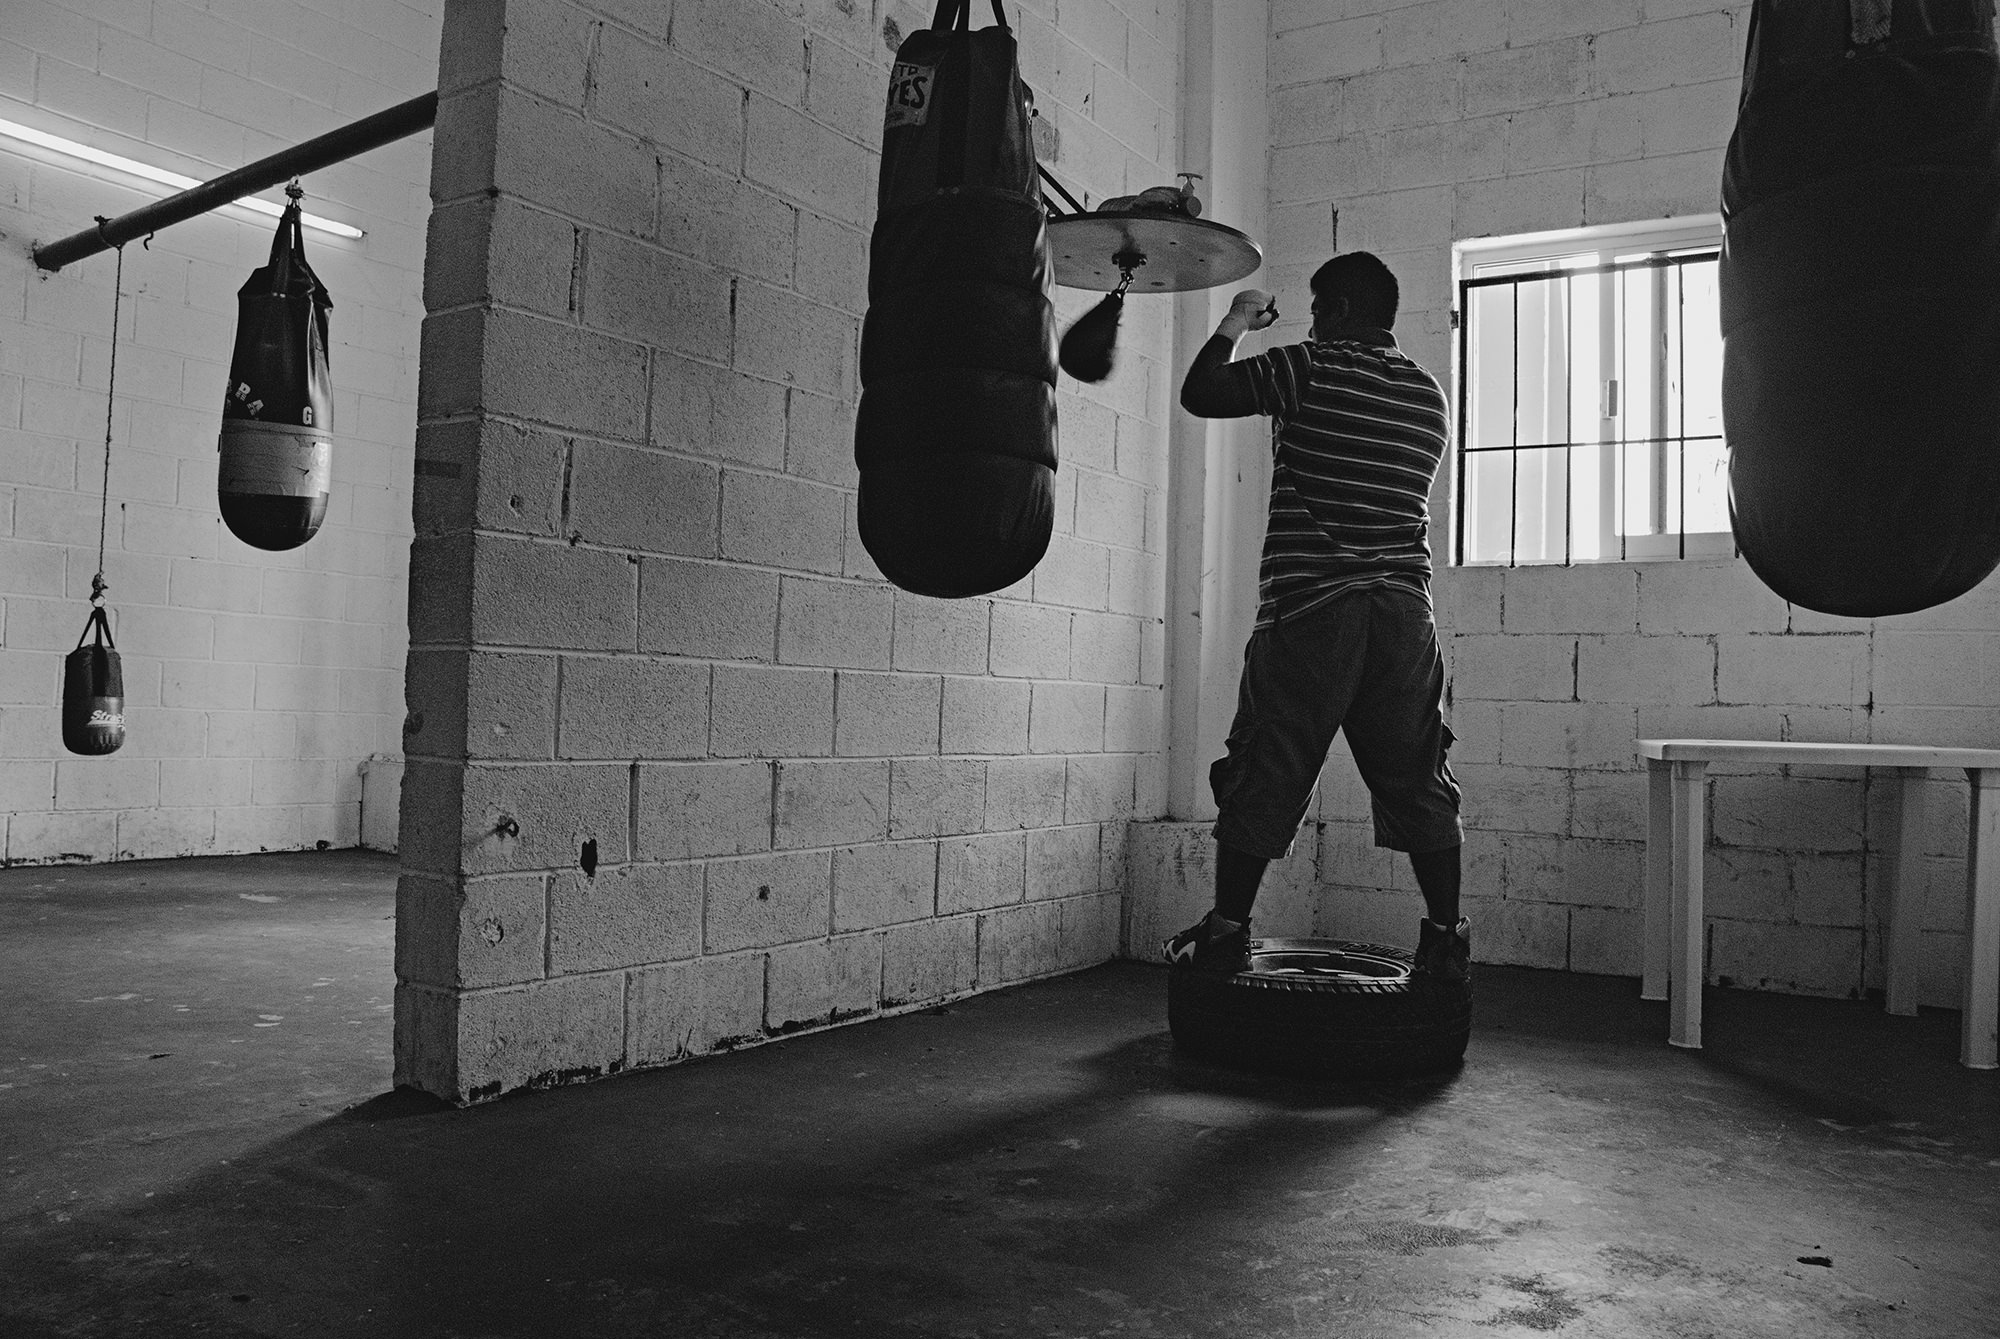 Boxing is known to be a solitary sport.